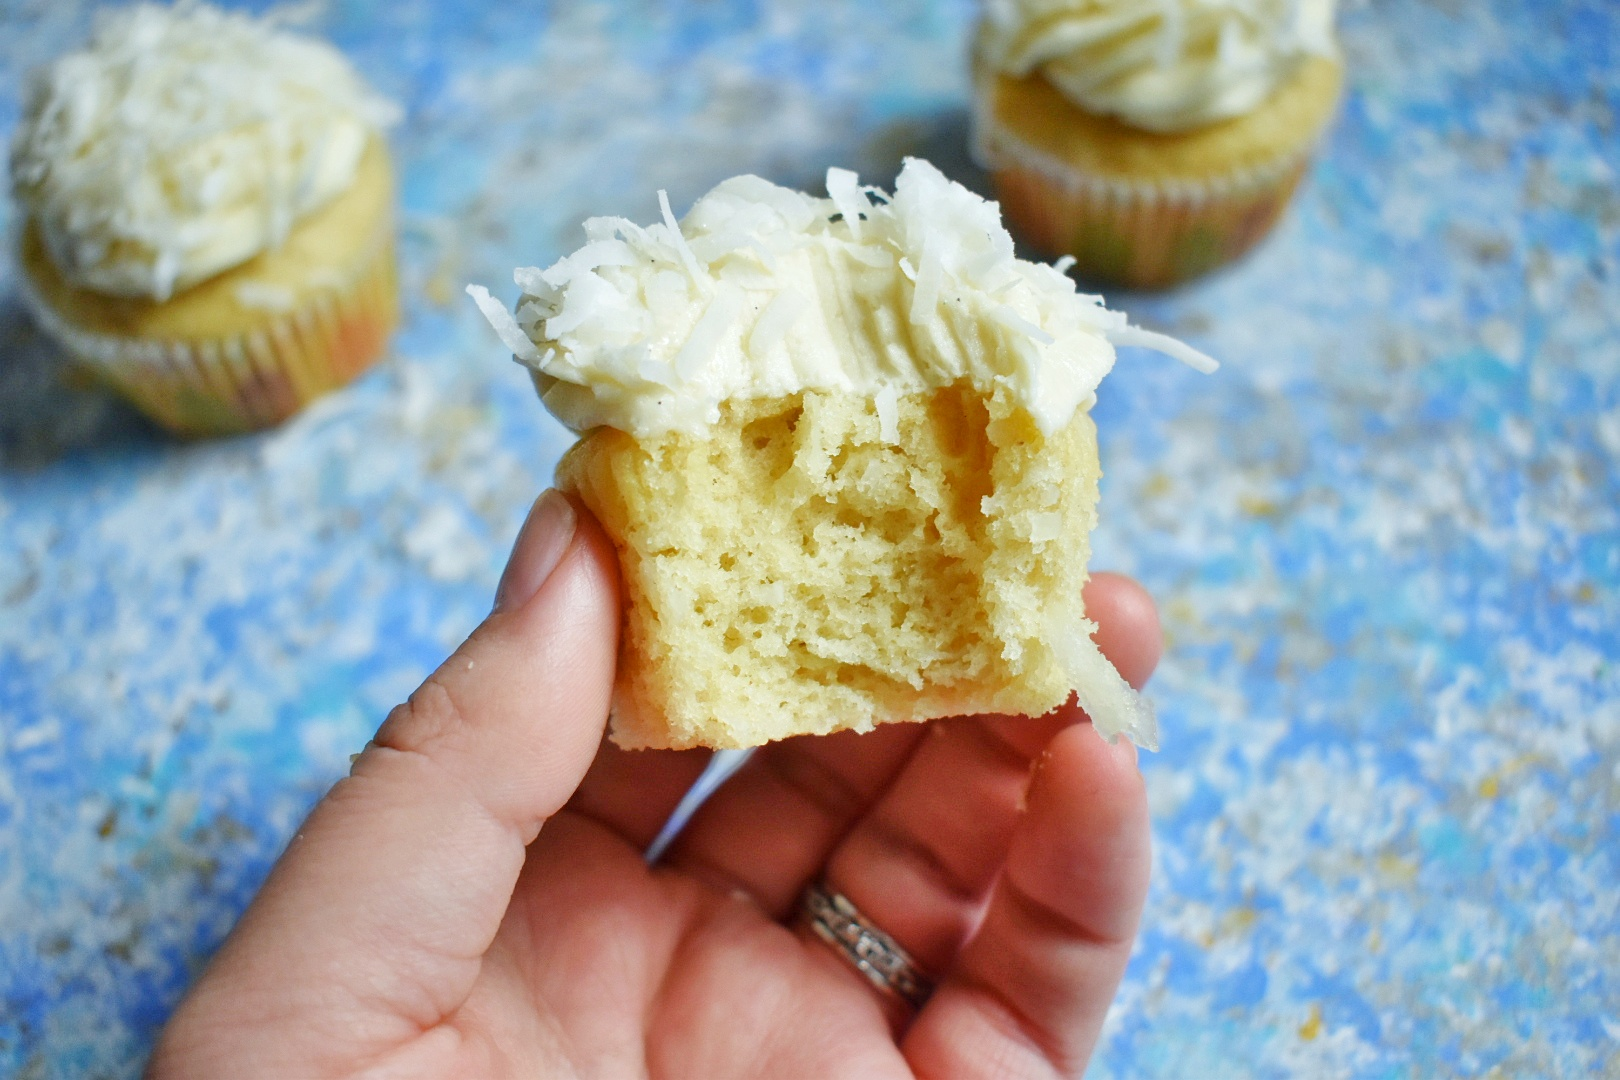 These ultra-fluffy vegan coconut cupcakes are light as air and packed with coconut flavor, but made with simple and easy-to-find ingredients.